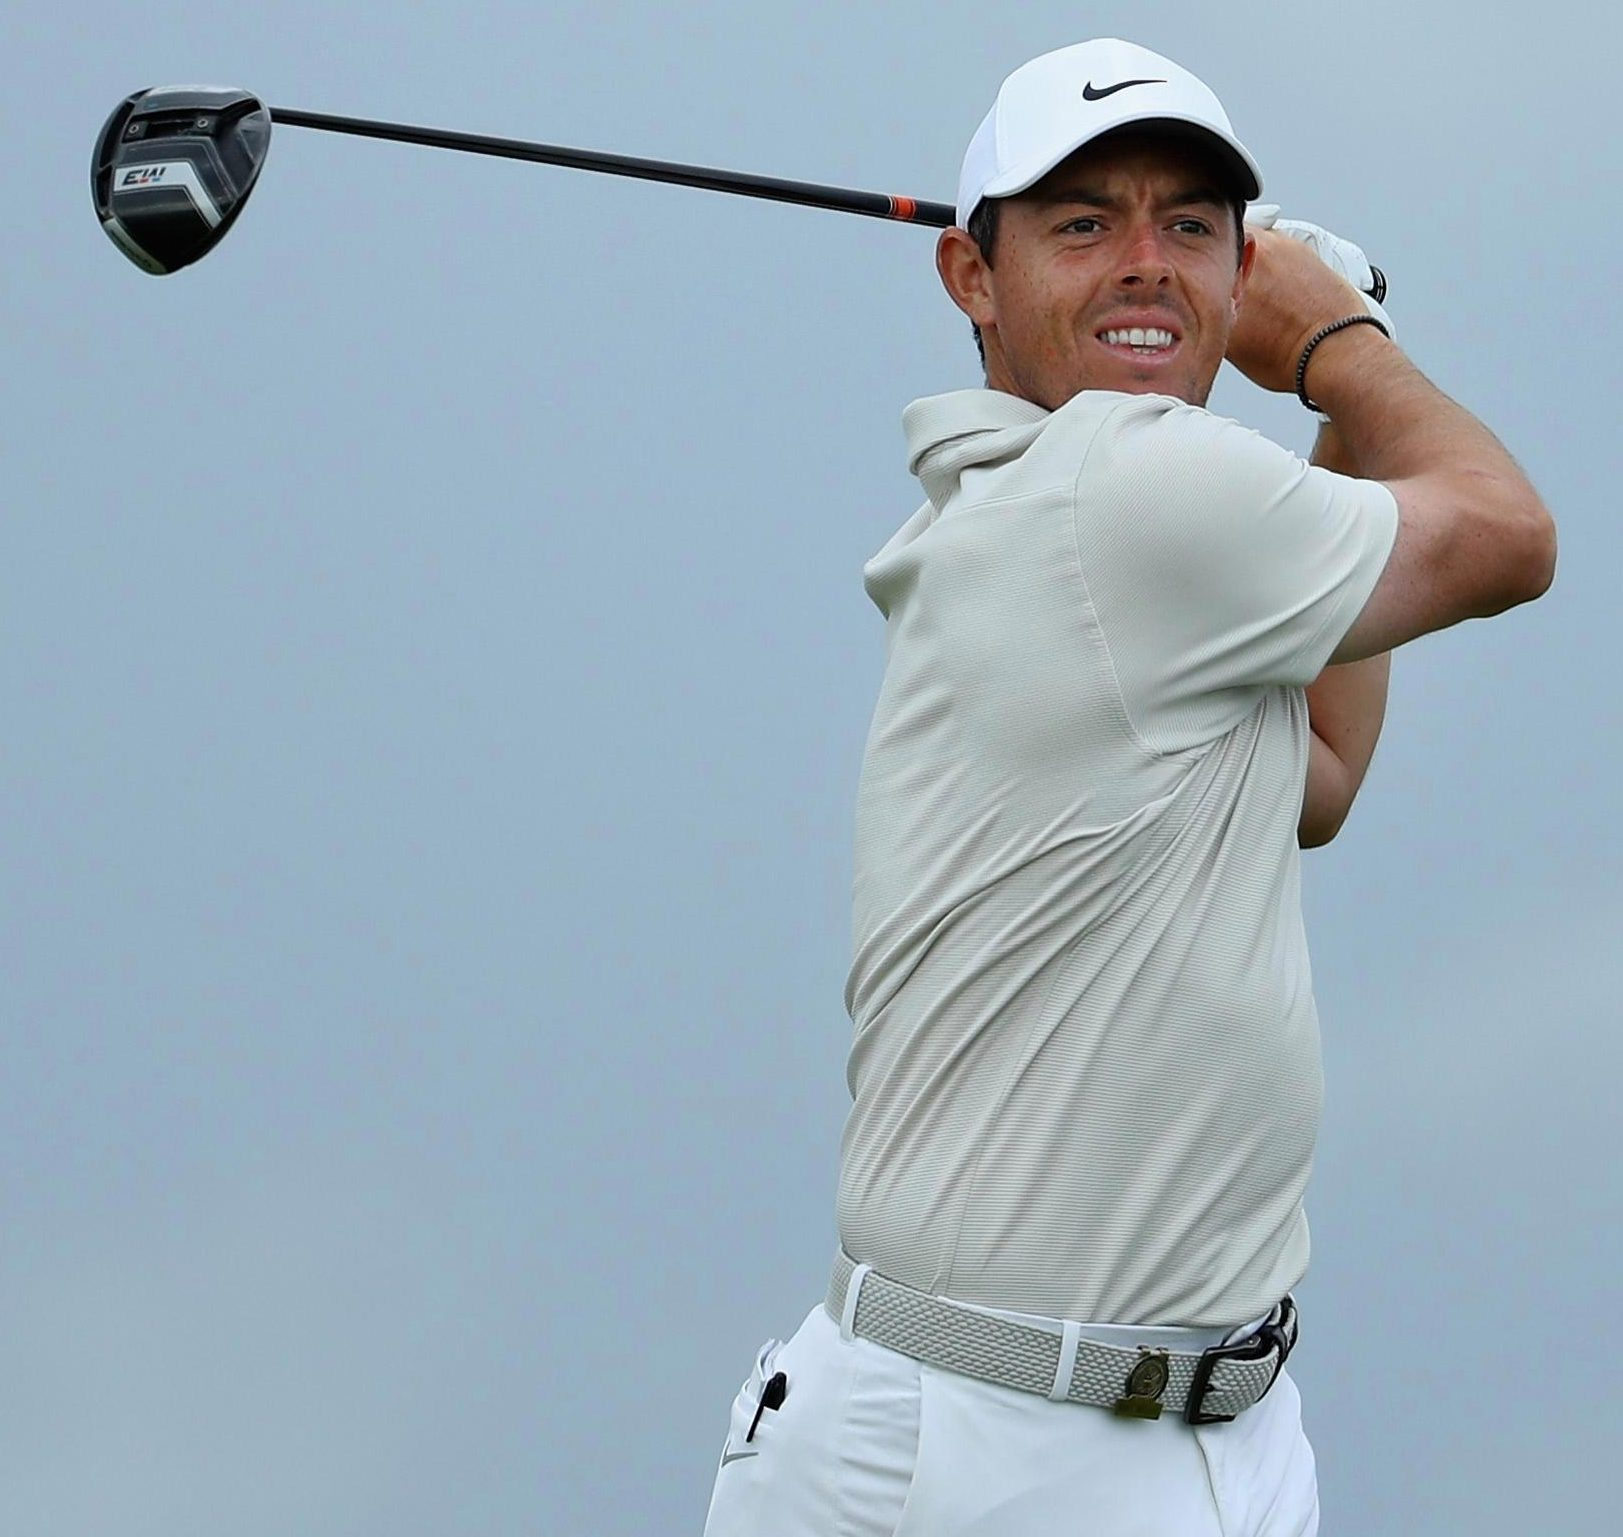 Rory McIlroy has now missed the US Open cut for a third year in a row